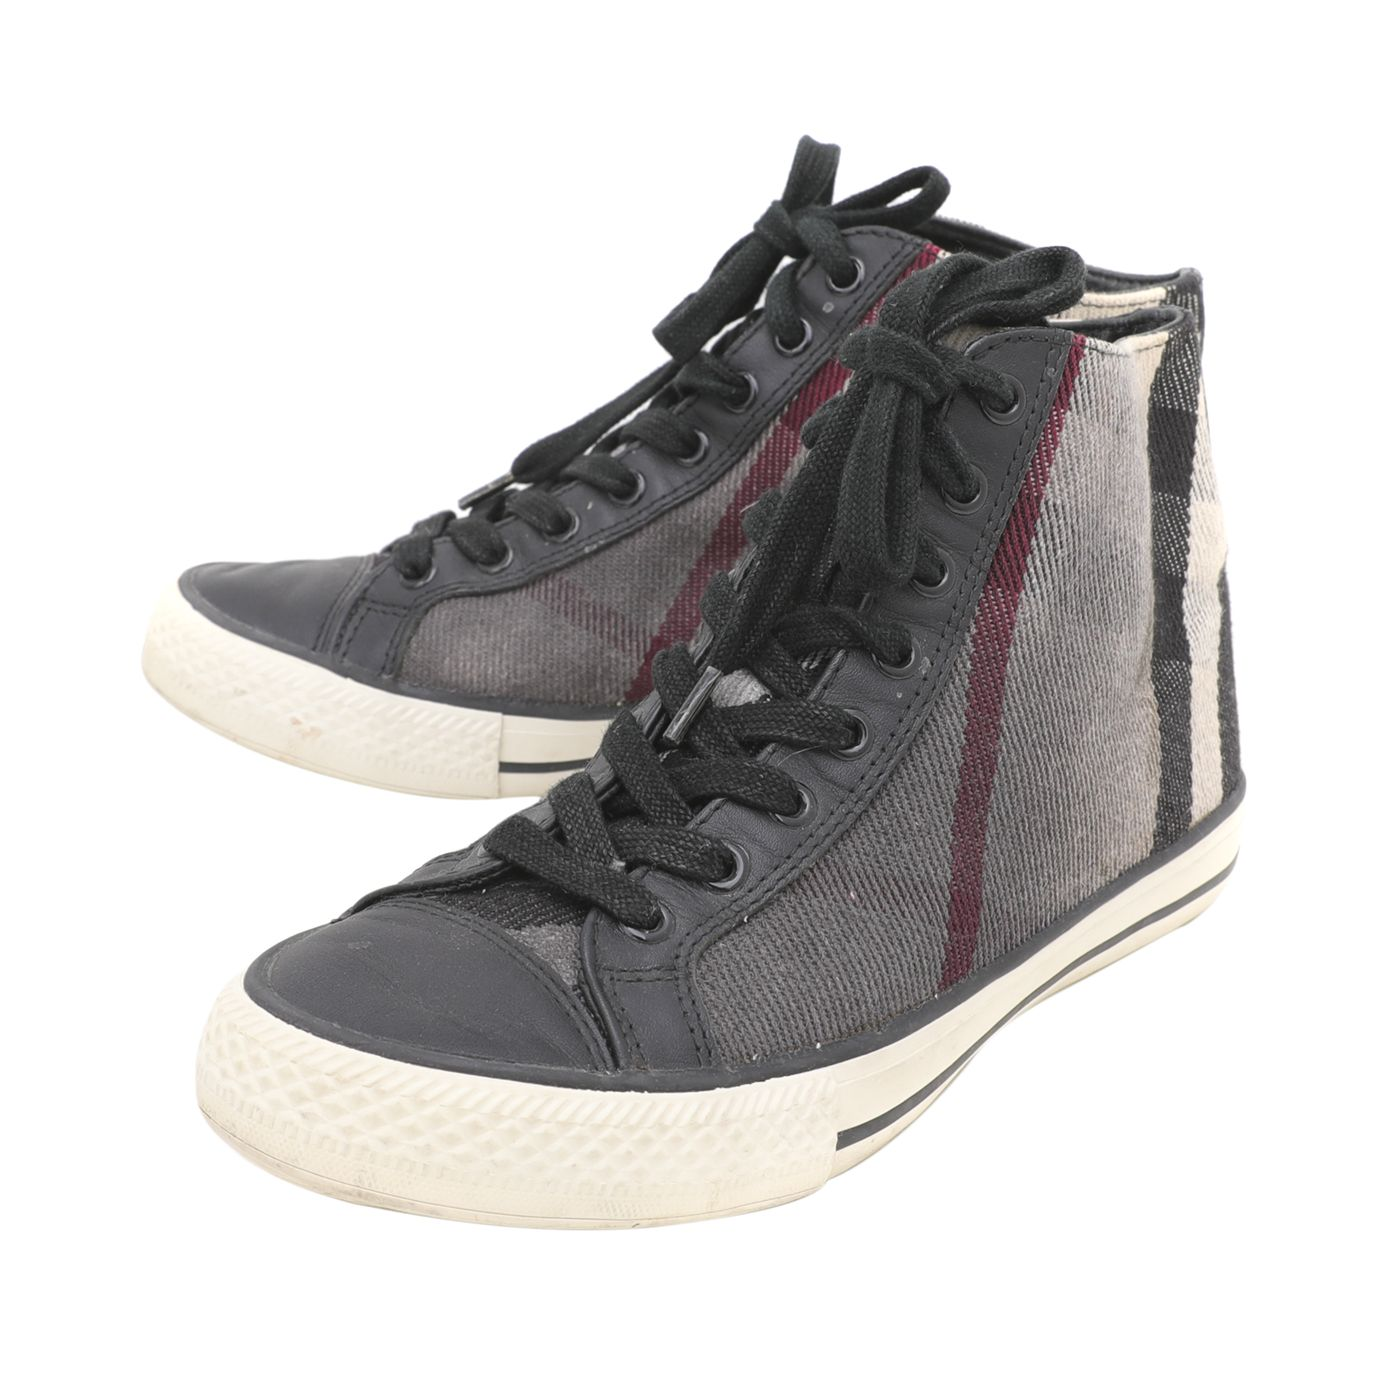 Burberry Black Novacheck Lace Up High Top Sneaker 39